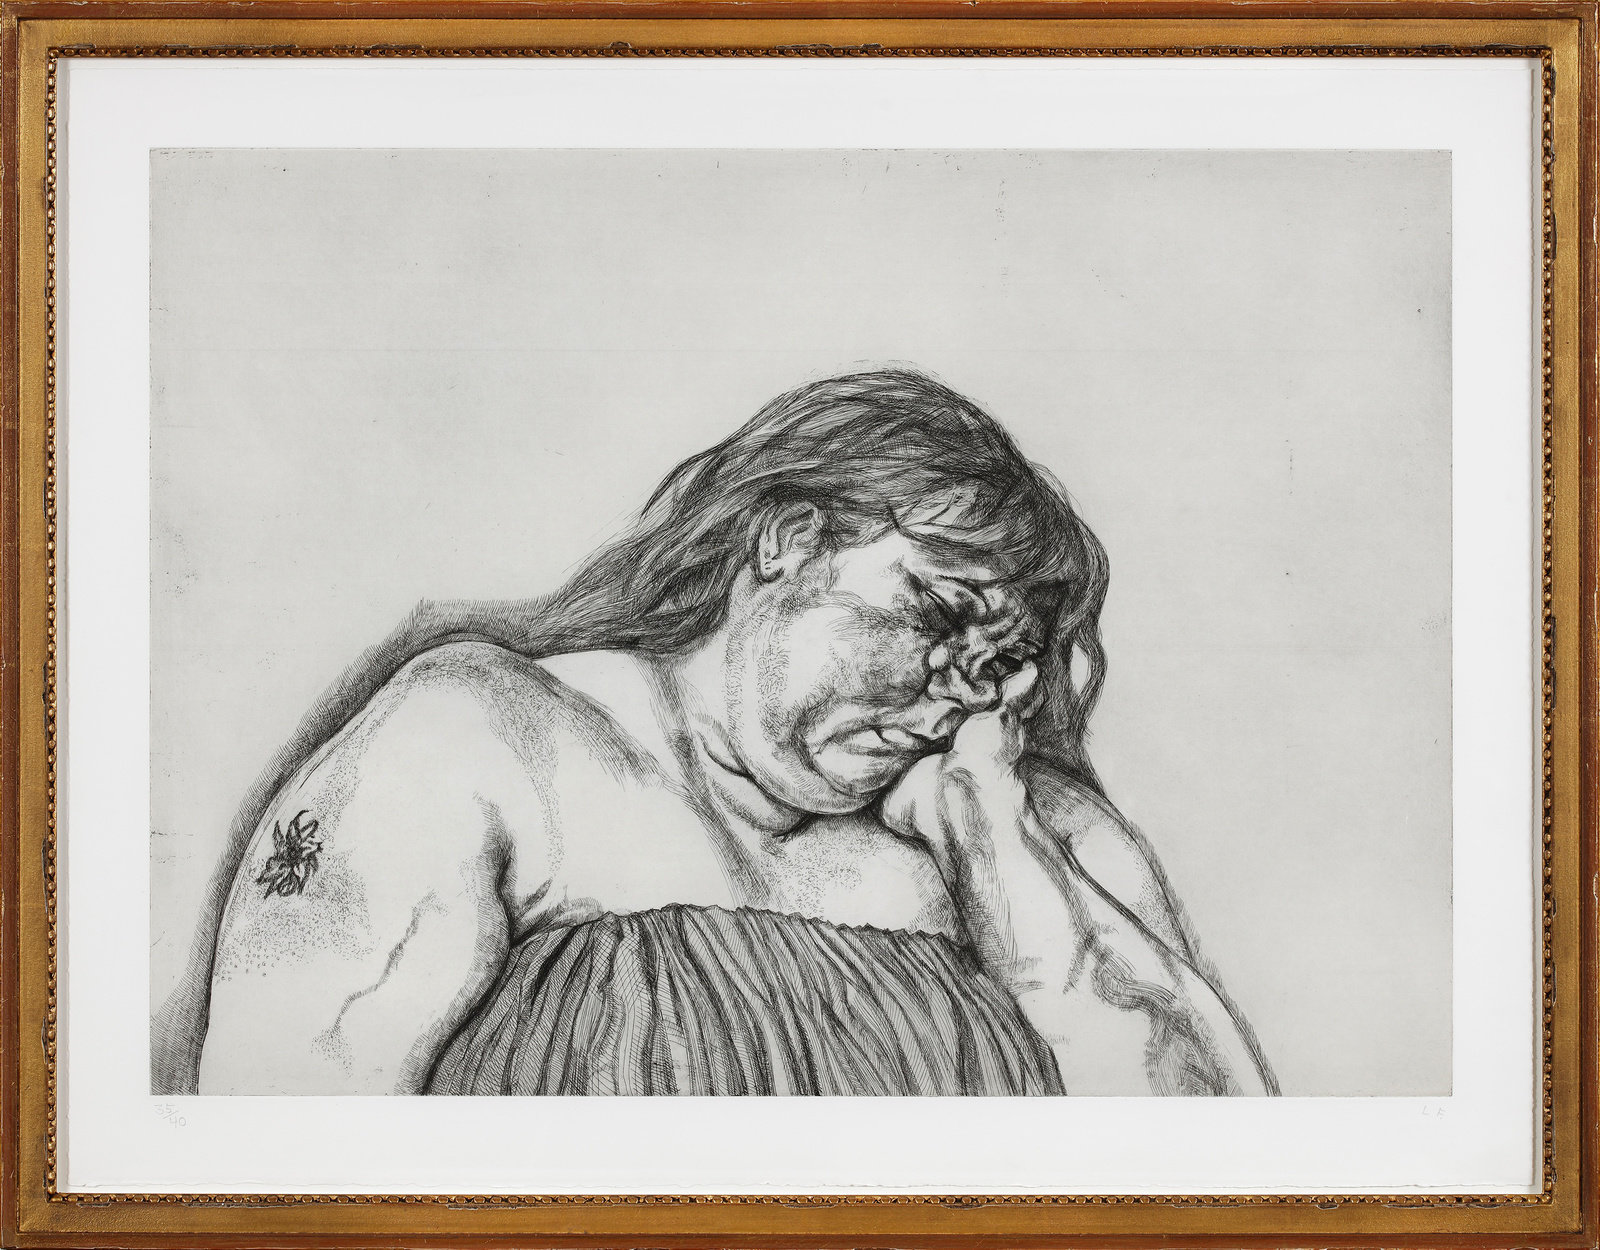 Freud, woman with an arm tattoo, 1996, etching, edition of 40, 27 1 2 x 36 in., 70 x 91.5 cm, 350828